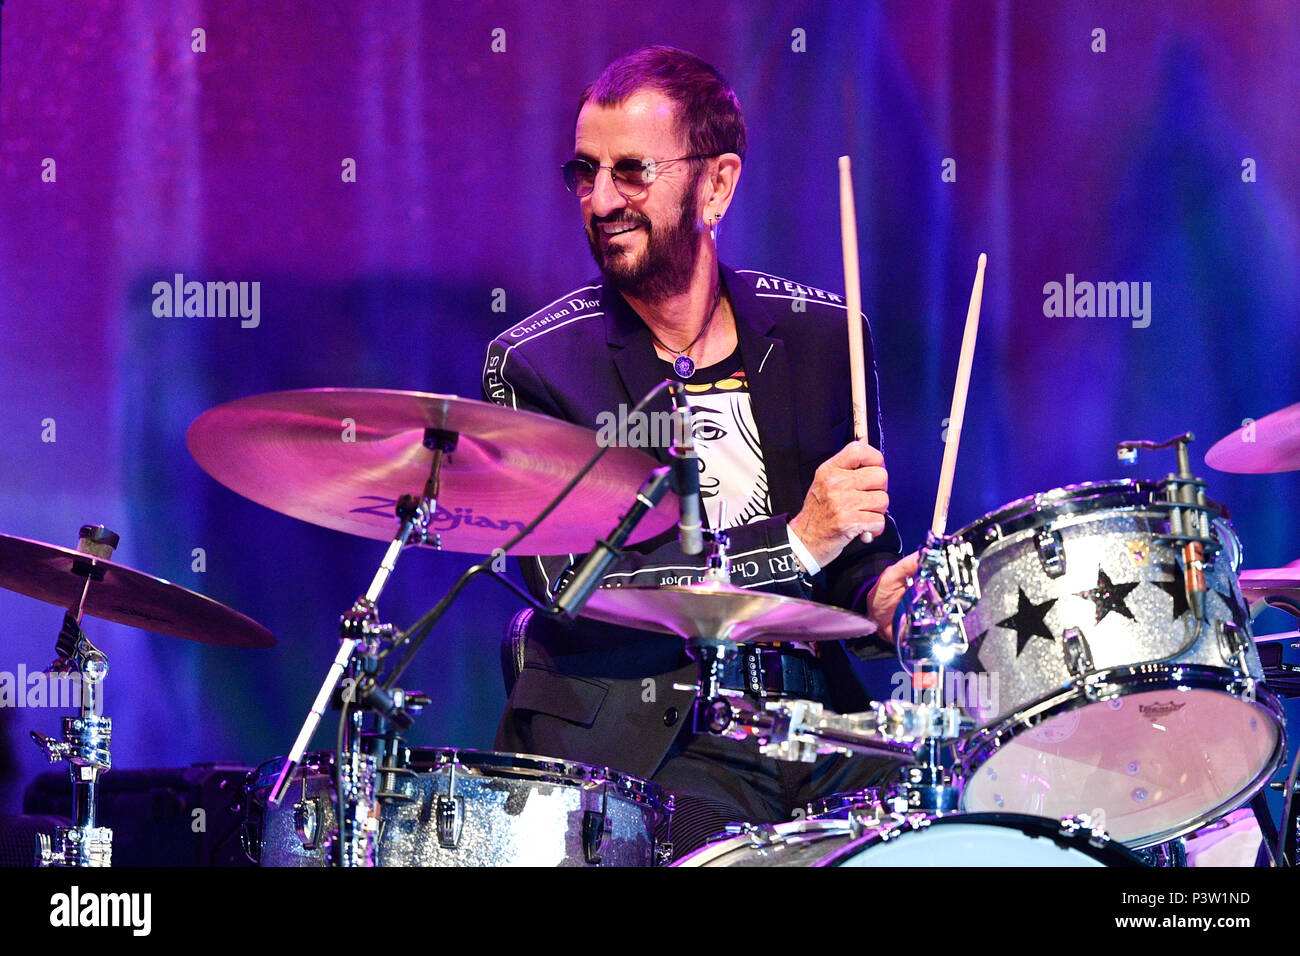 Prague, Czech Republic. 19th June, 2018. British singer Ringo Starr performs during the concert with his All Star Band at the Prague Congress Centre, Czech Republic, on June 19, 2018. Credit: Michal Kamaryt/CTK Photo/Alamy Live News Stock Photo